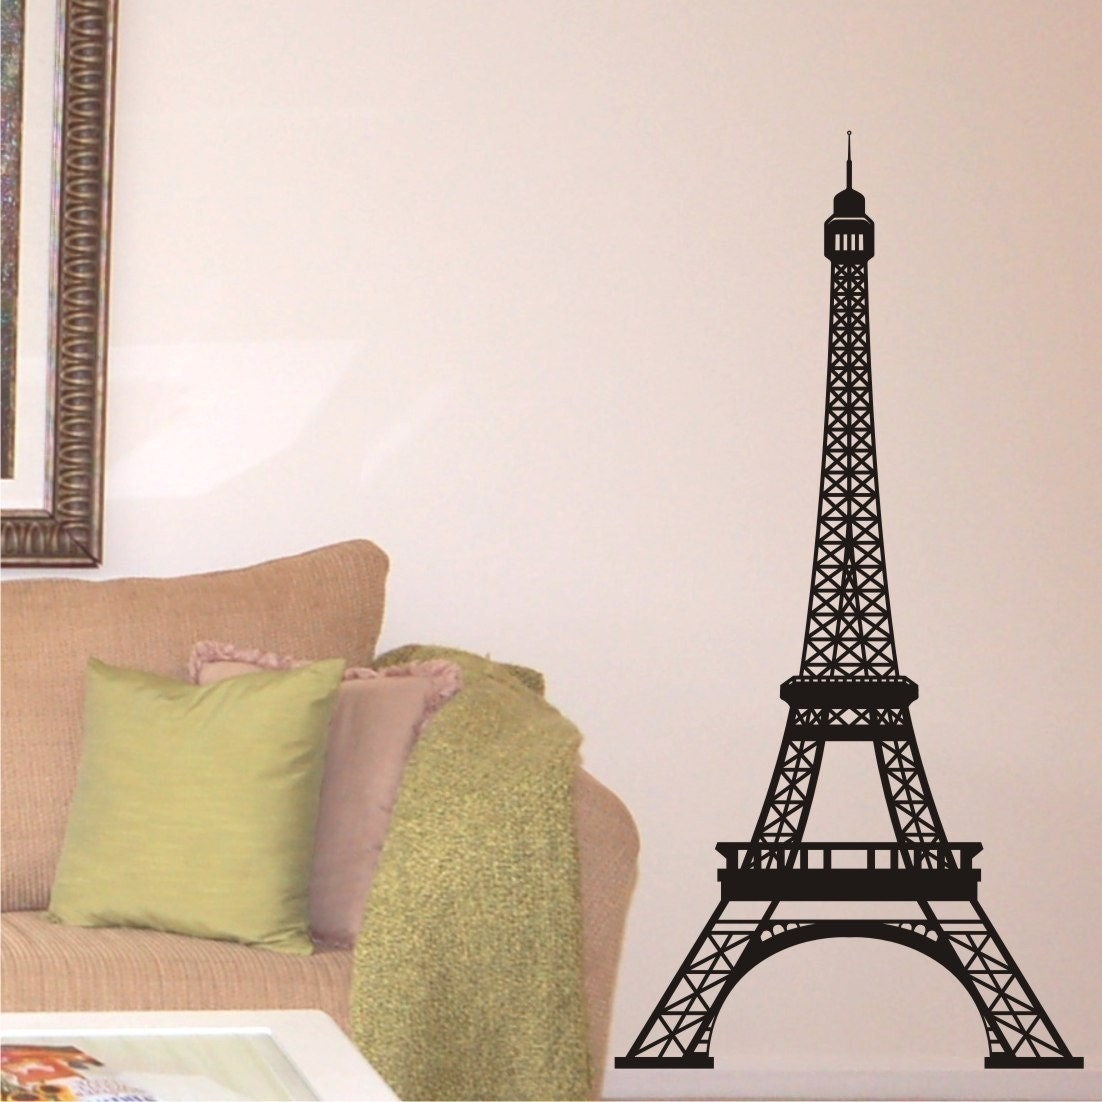 Wall Decor Eiffel Tower Rumah Minimalis